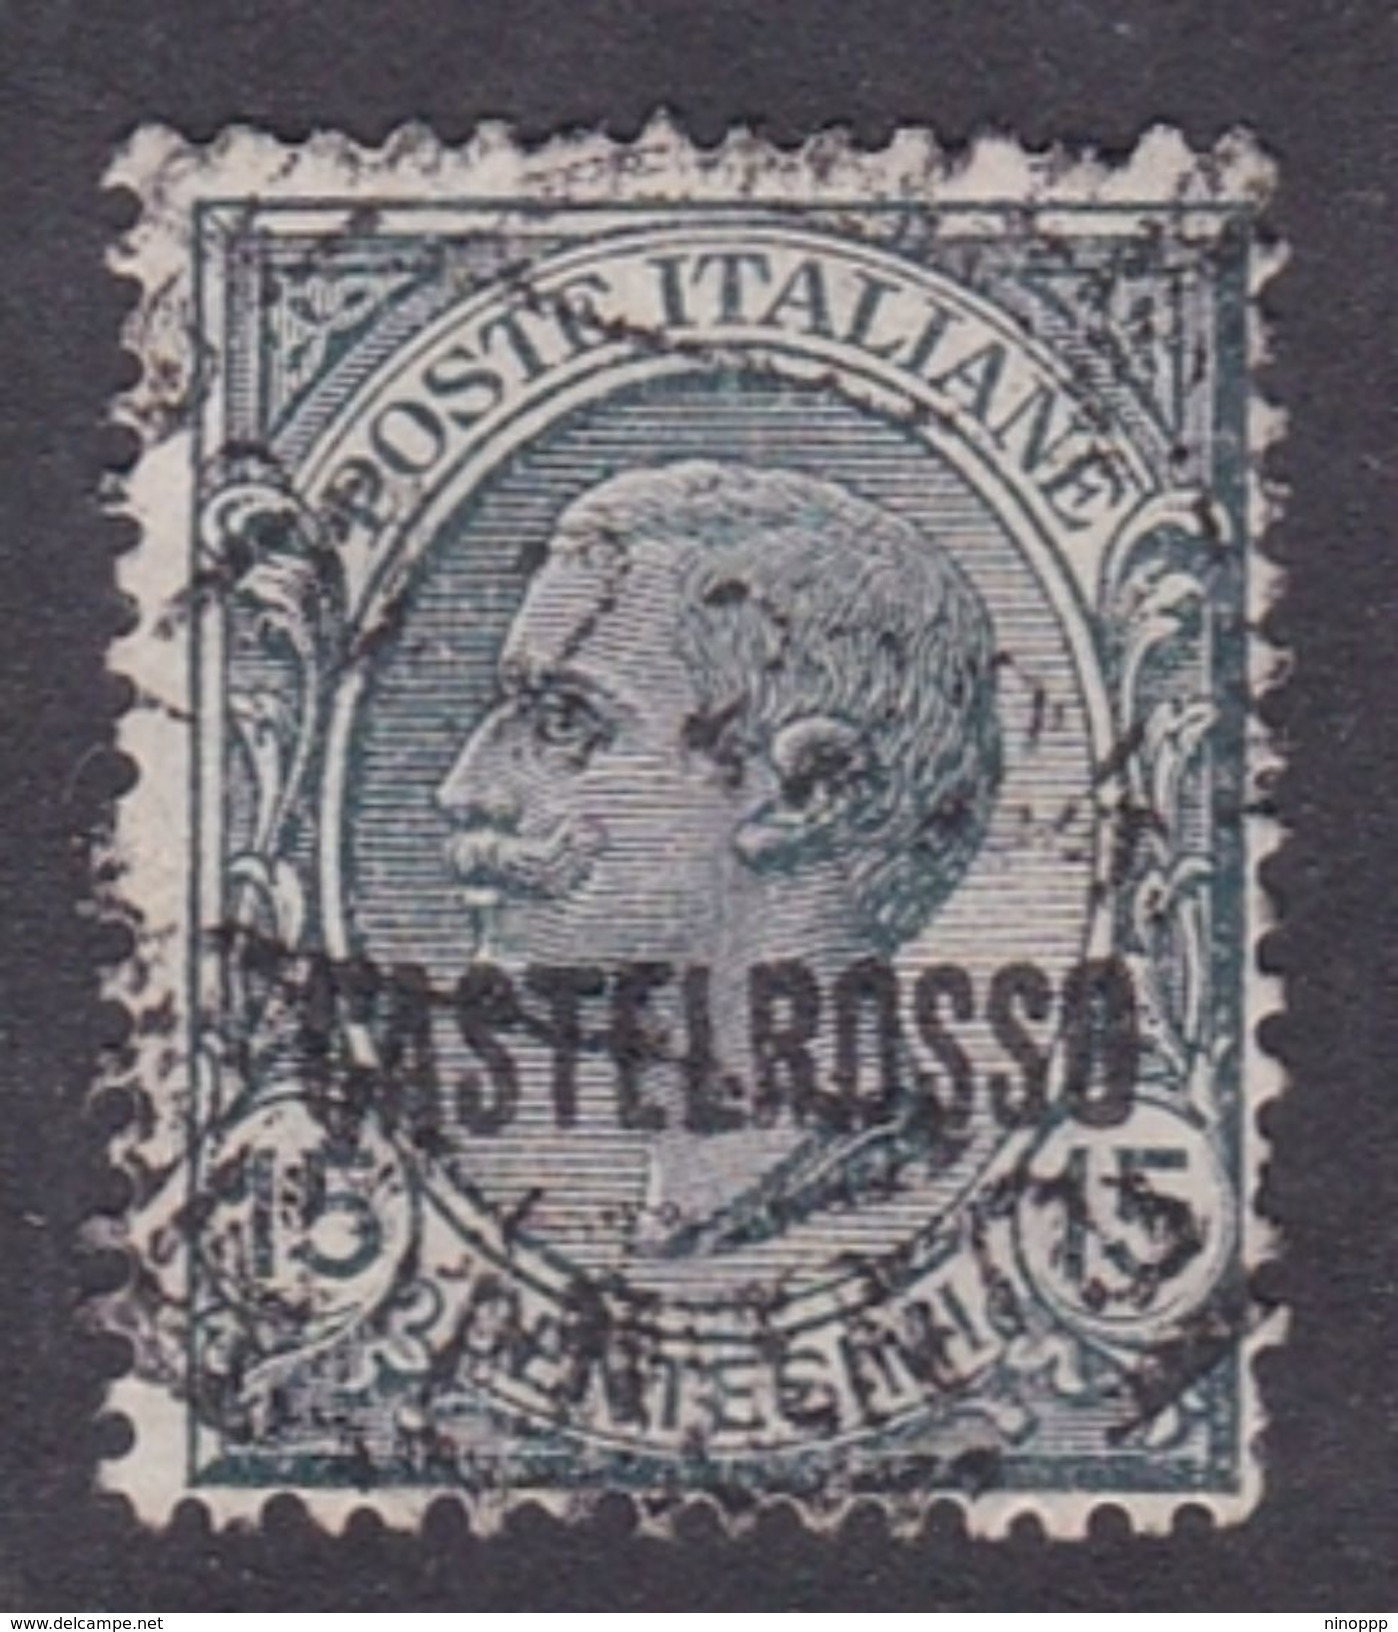 Italy-Colonies And Territories-Castelrosso S3 1922 15c Slate Used - General Issues